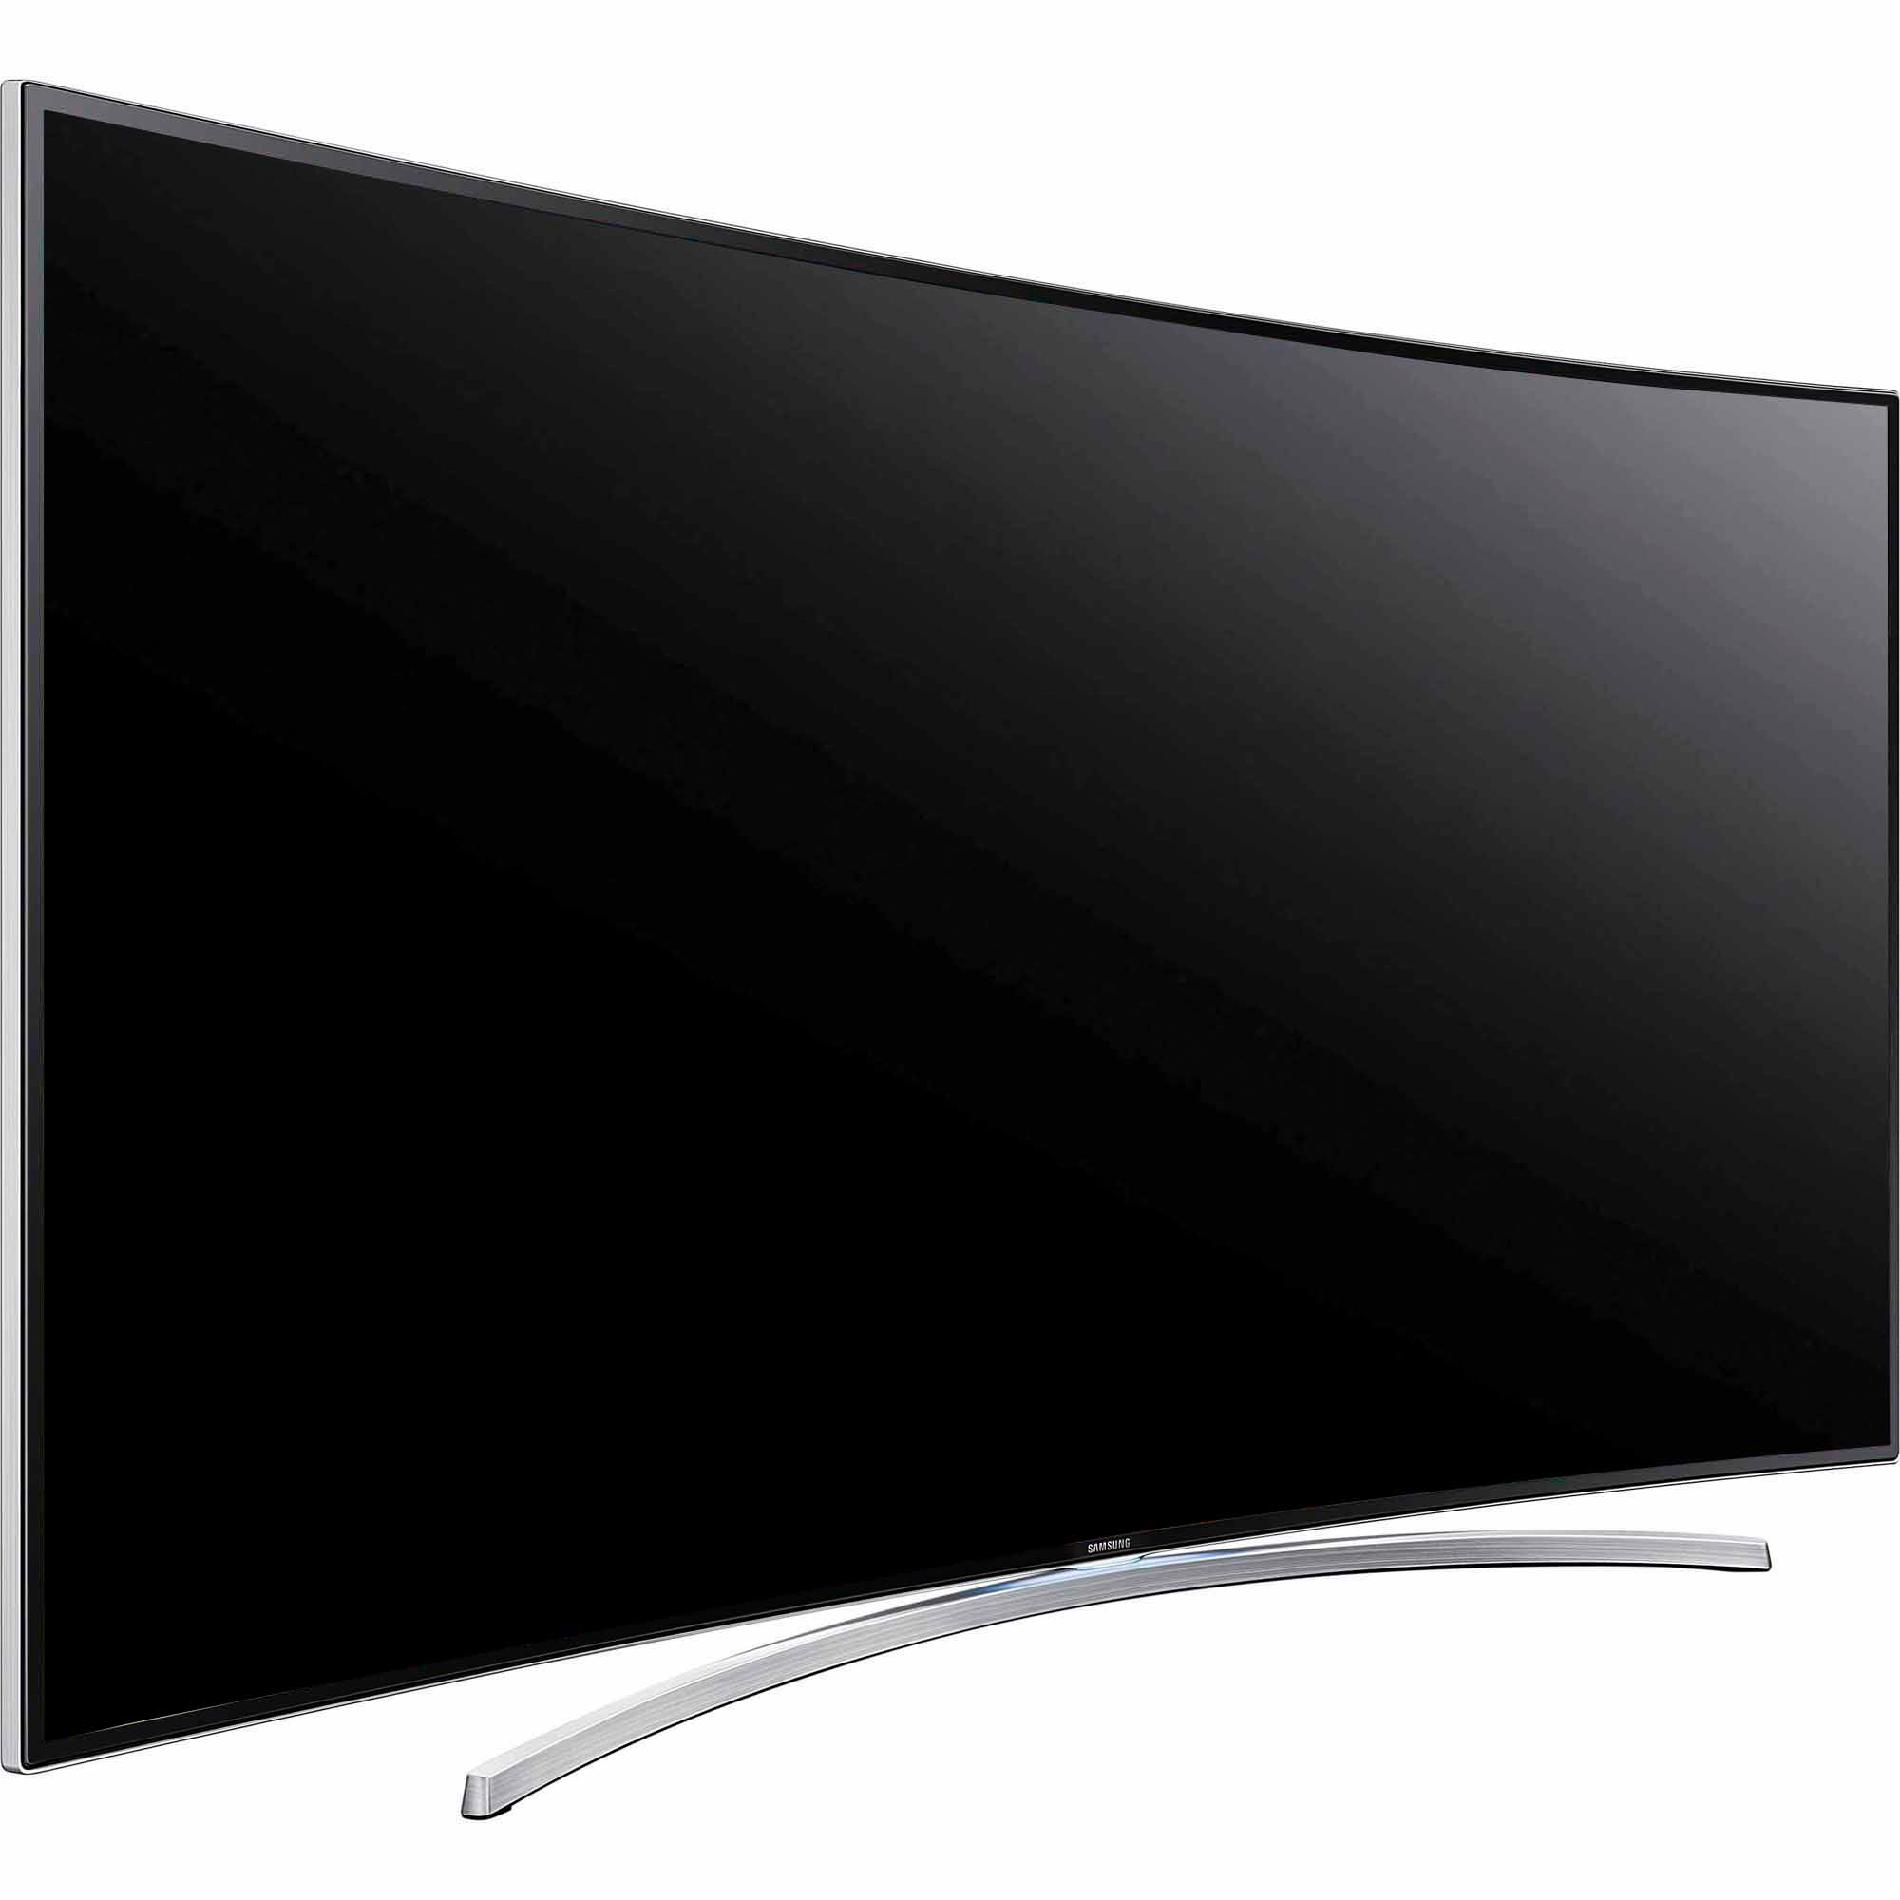 "Samsung 55"" Class 1080p 240Hz Curved LED Smart Full HDTV - UN55H8000"